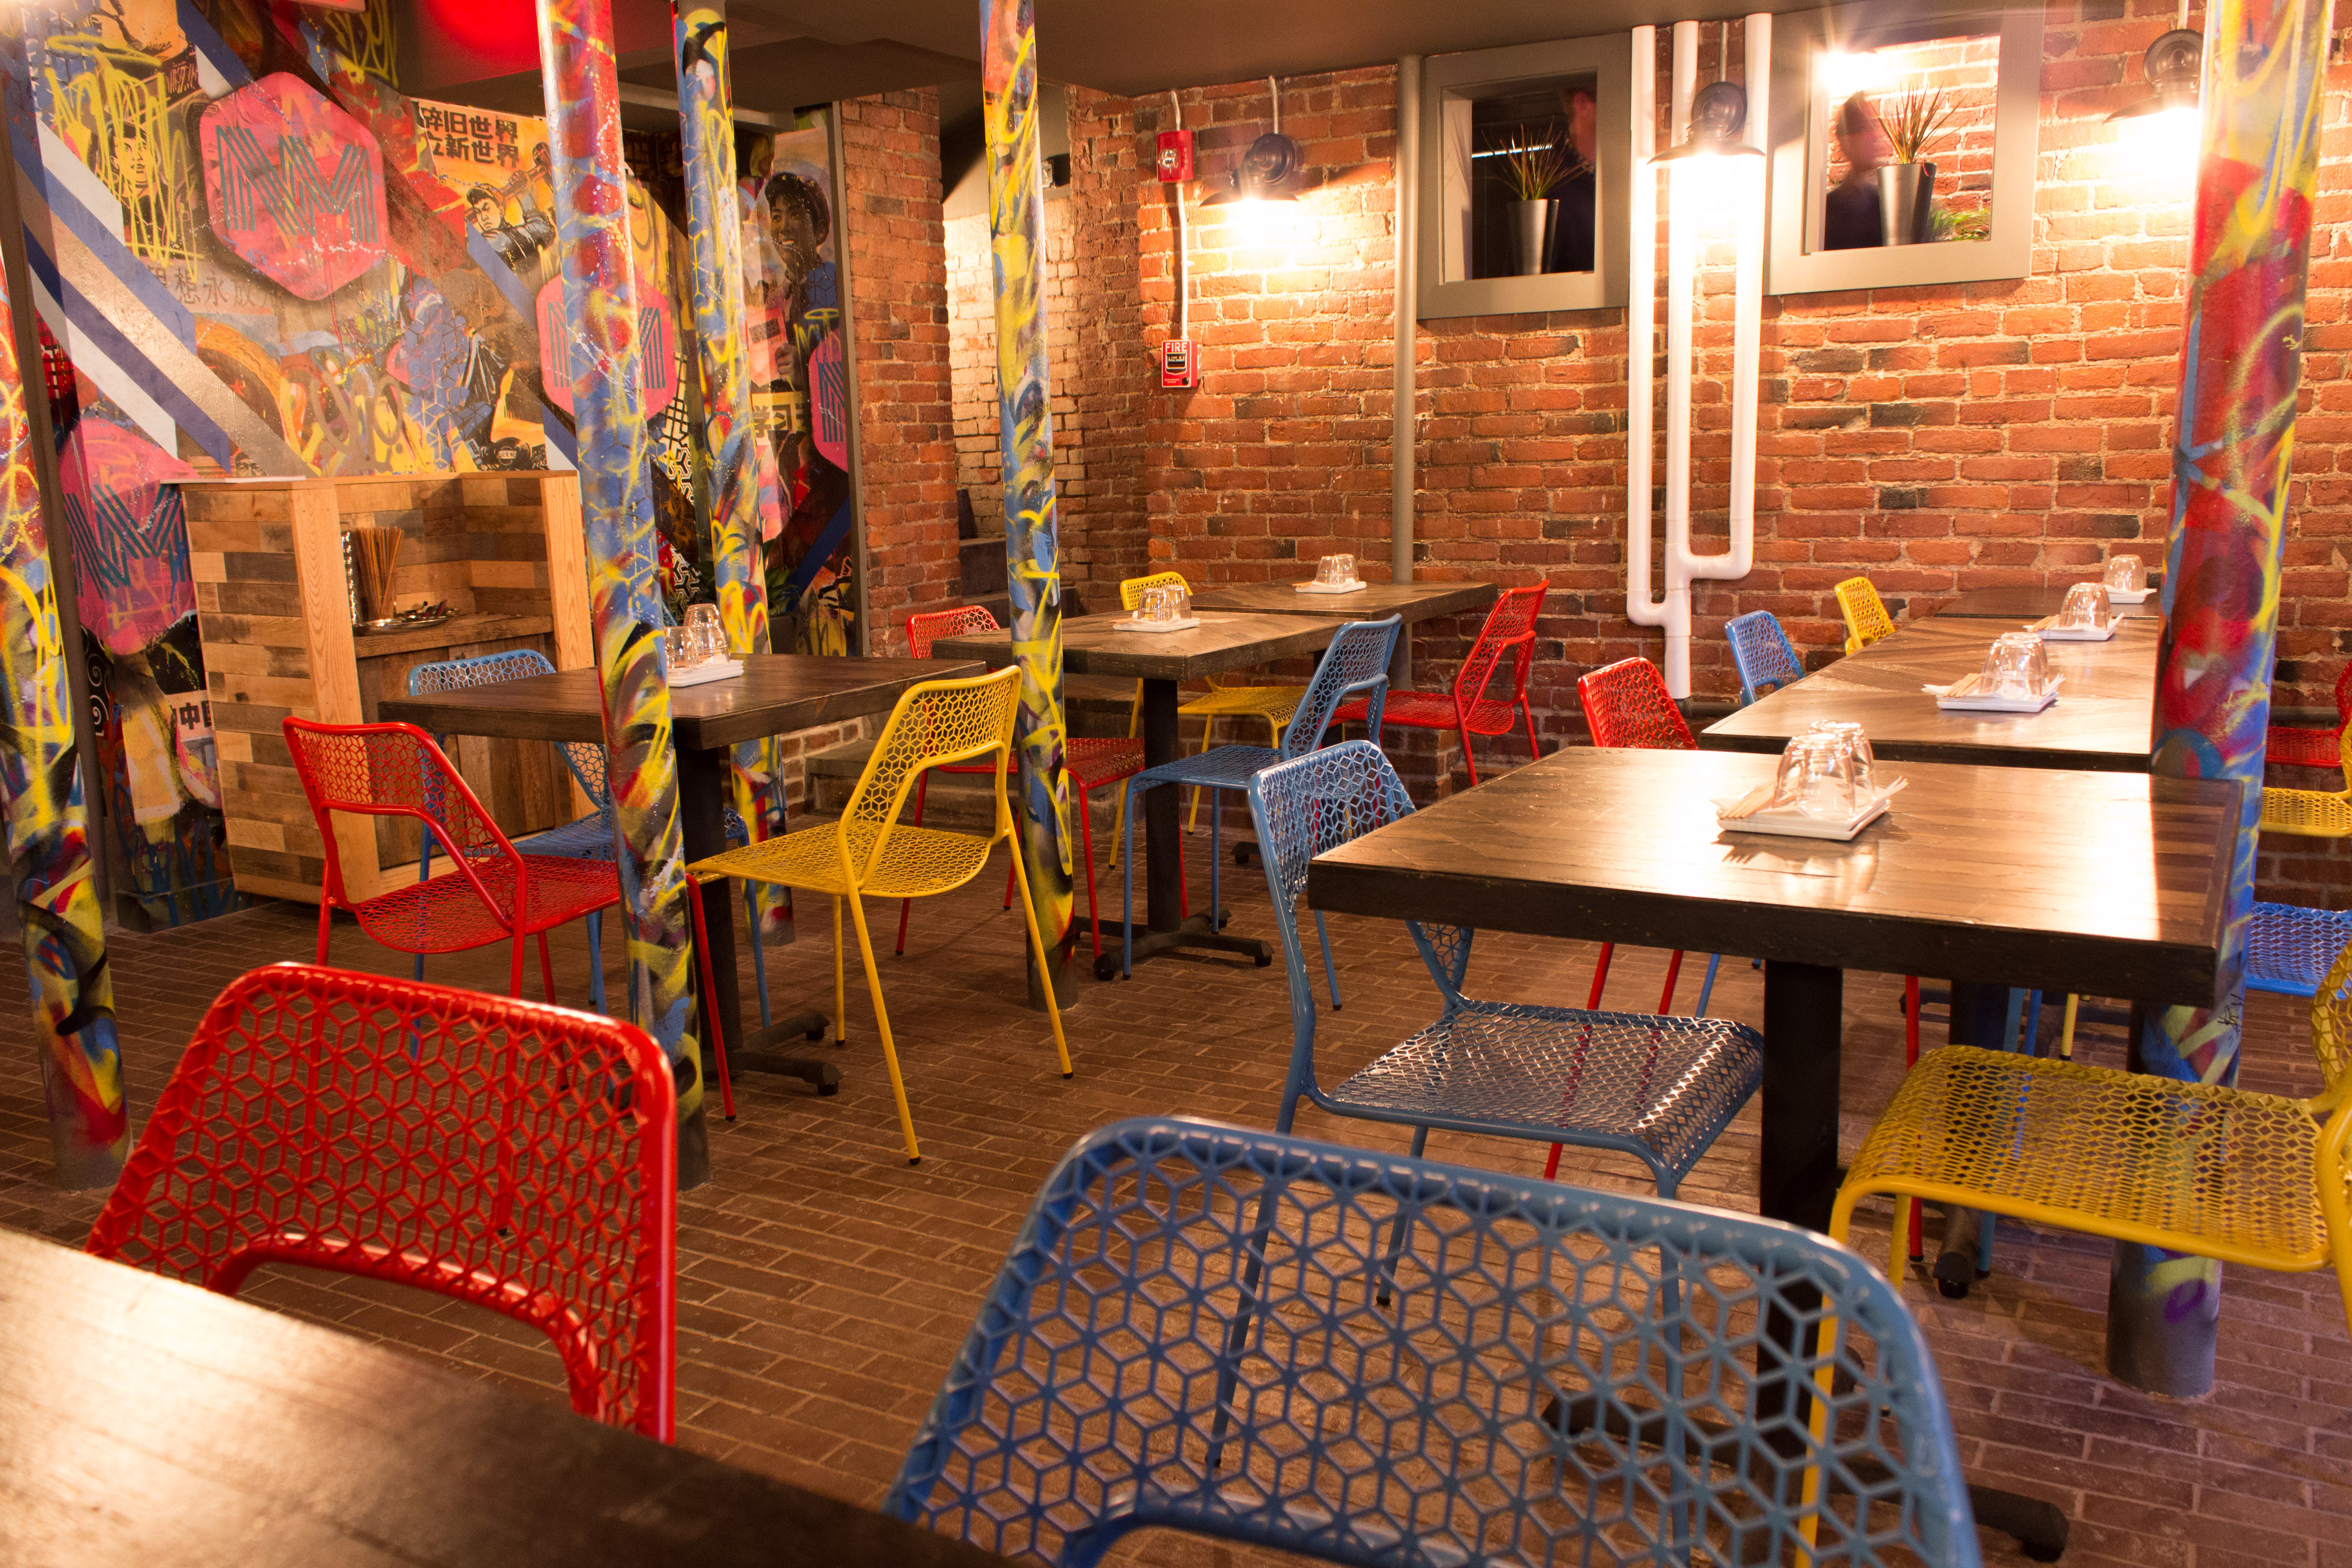 An Asian Street Food Restaurant Closed This Week in Harvard Square